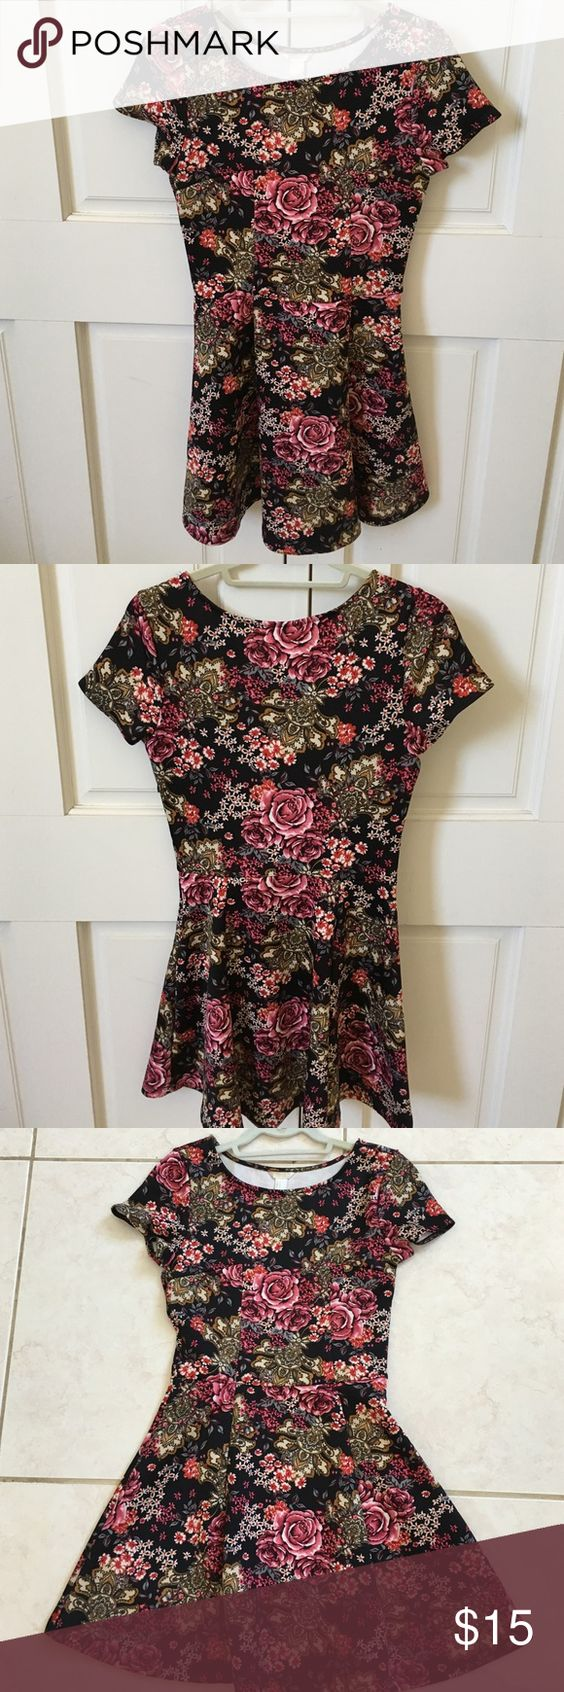 NWOT Forever 21 Floral Dress 🌼🌹 NEVER WORN! Brand new condition. Black floral dress from Forever 21 made of stretchy material. Also has a side zipper. Fits snug on hips and then poofs out. Super cute. Let me know if you have any questions 💛 Forever 21 Dresses